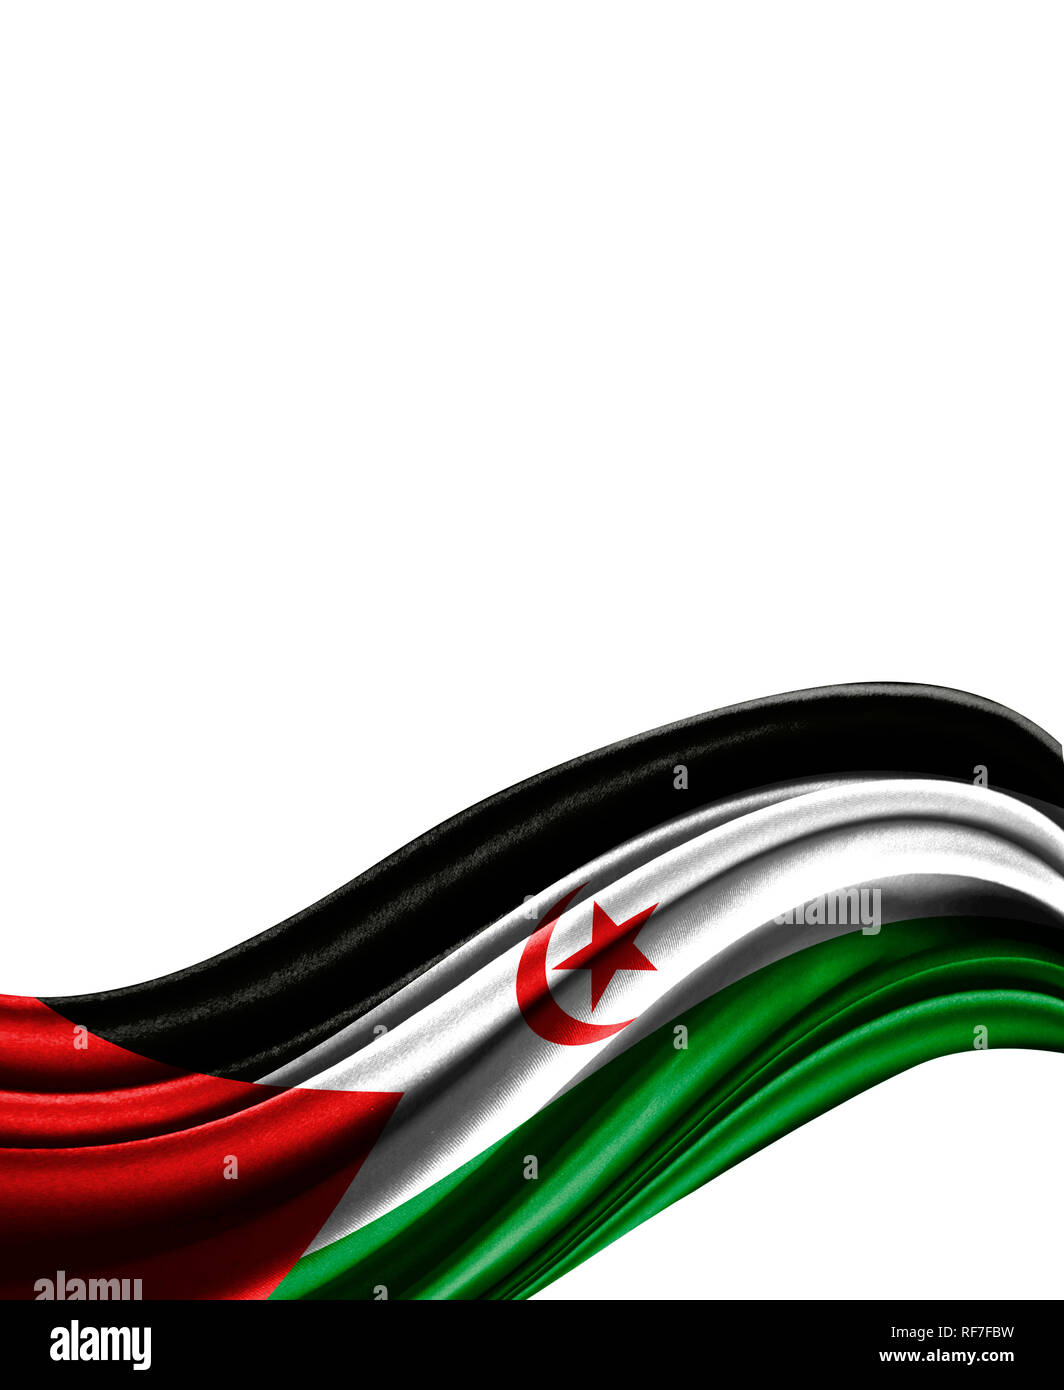 Western Sahara flag on cloth isolated on white background. - Stock Image